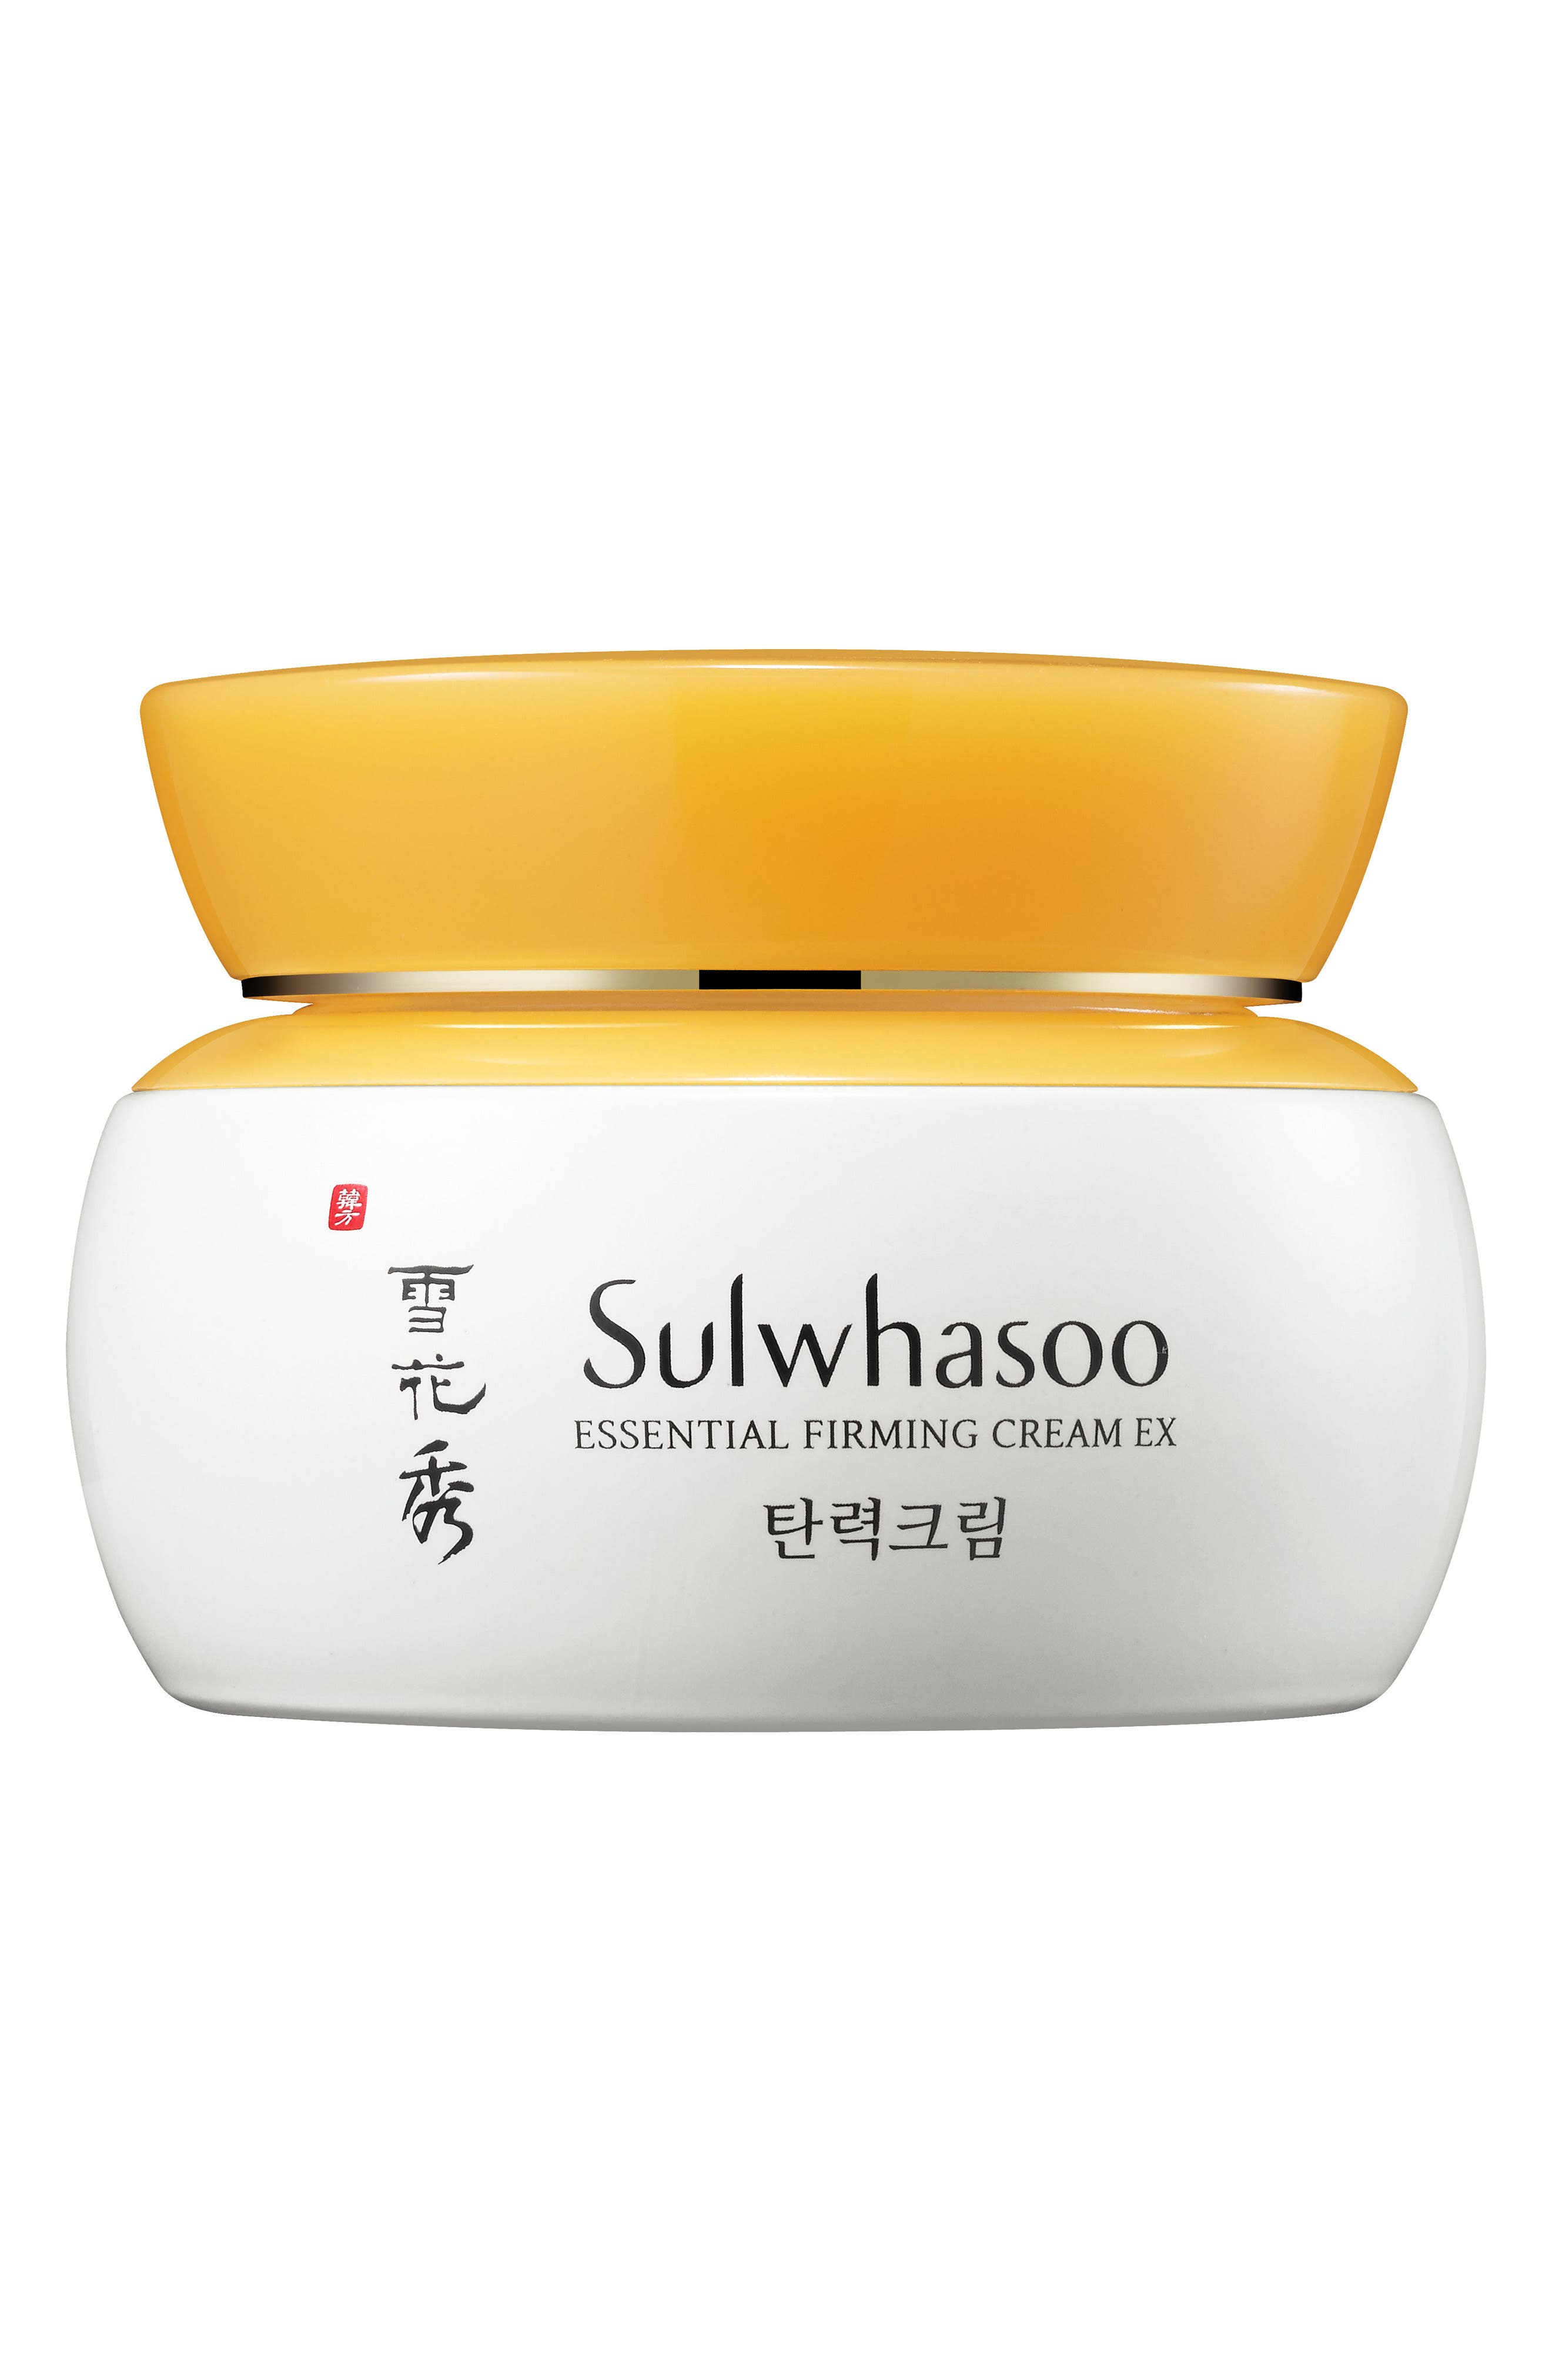 Sulwhasoo Essential Firming Cream Ex Modesens Time Treasure Renovating Water 125ml